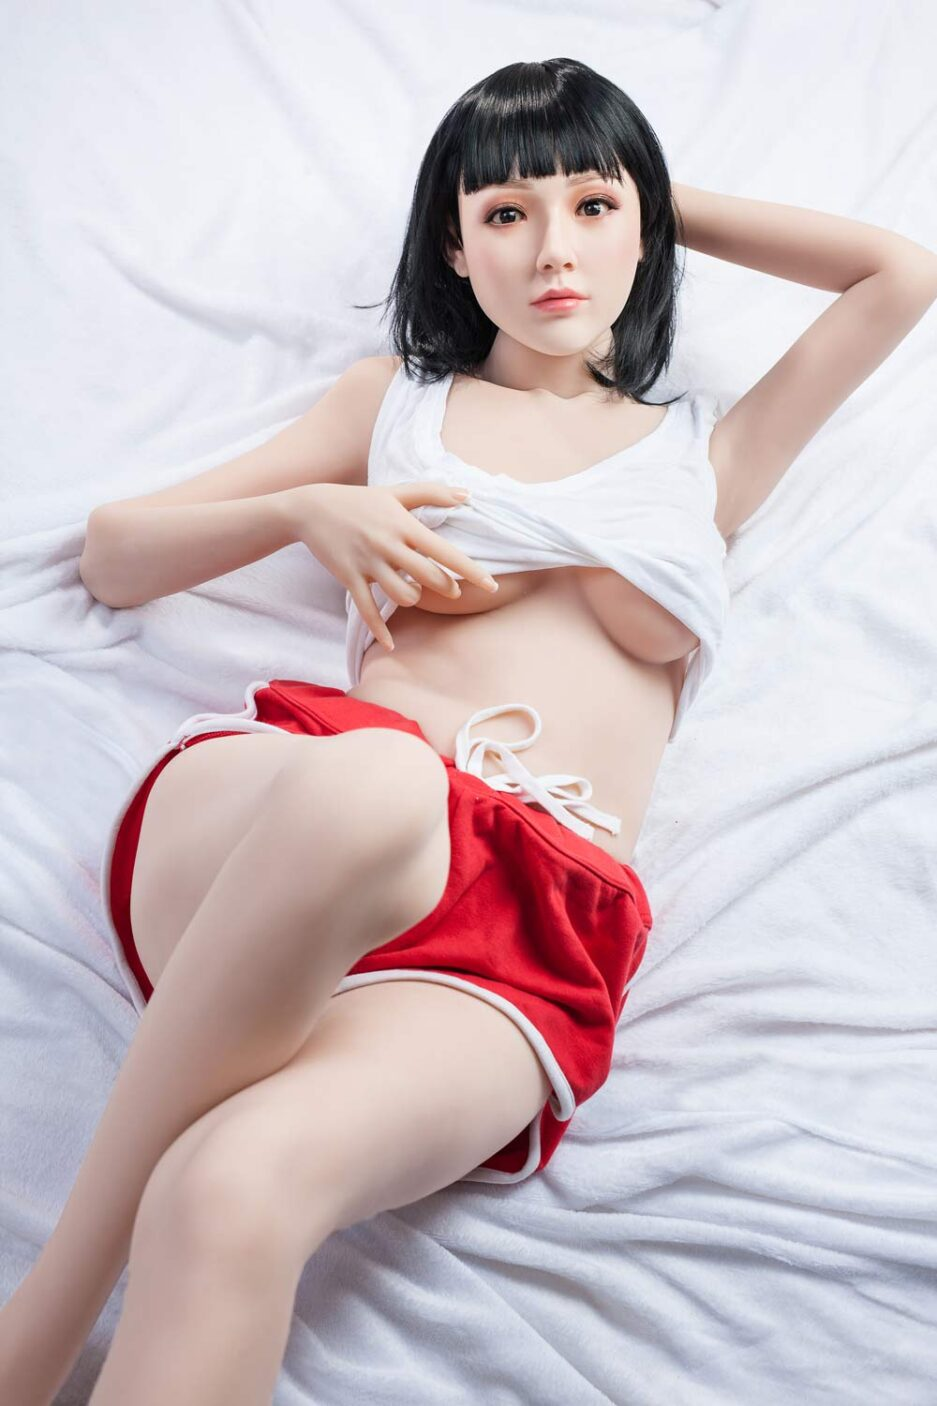 Silicone sex doll lying flat on bed and lifting clothes